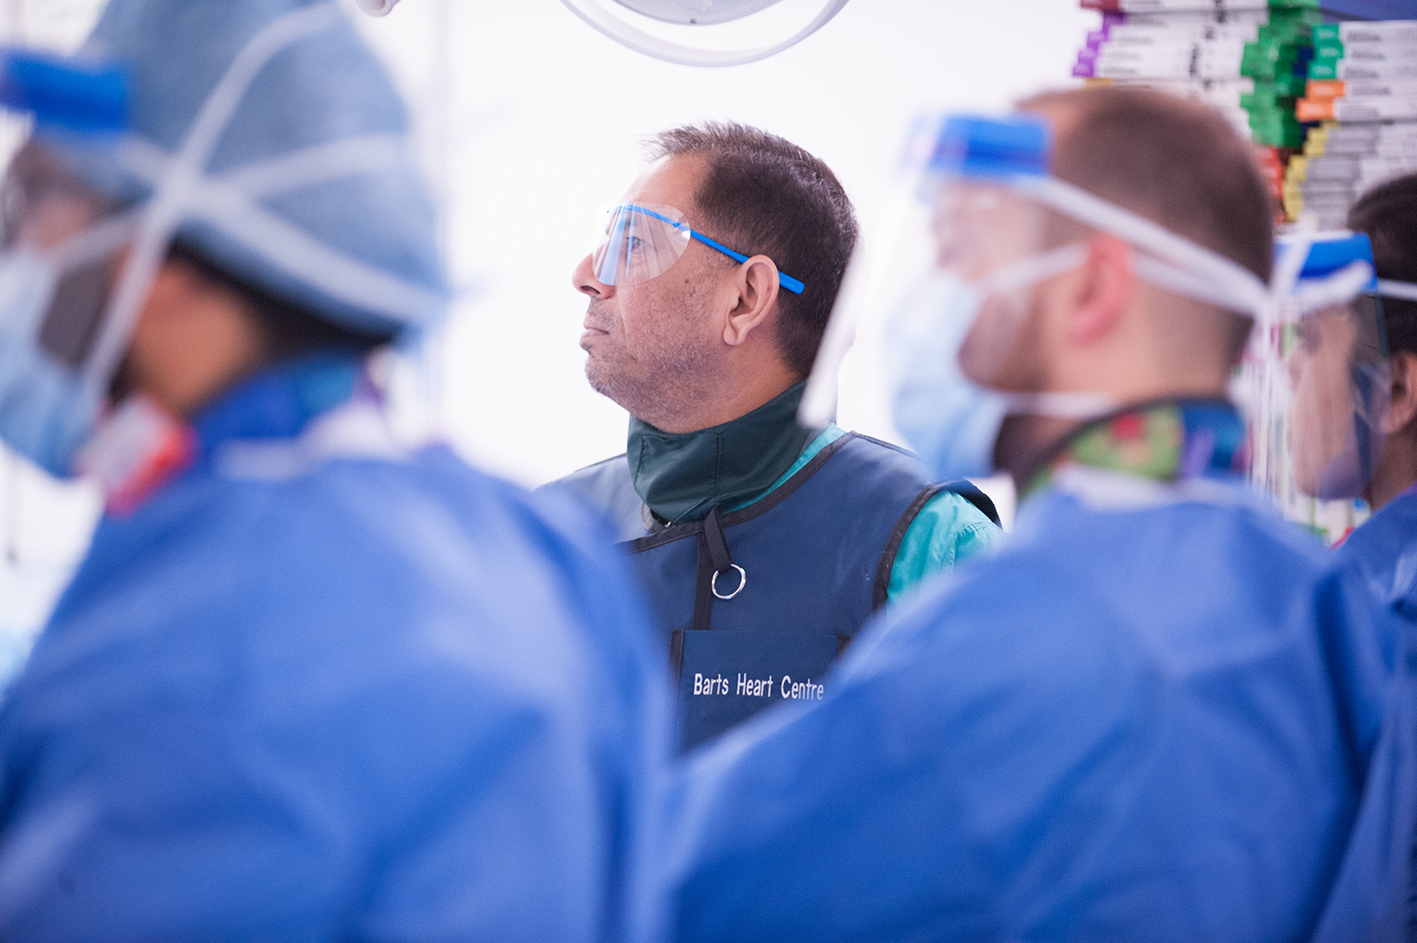 A surgeon concentrating looking towards a monitor during an operation